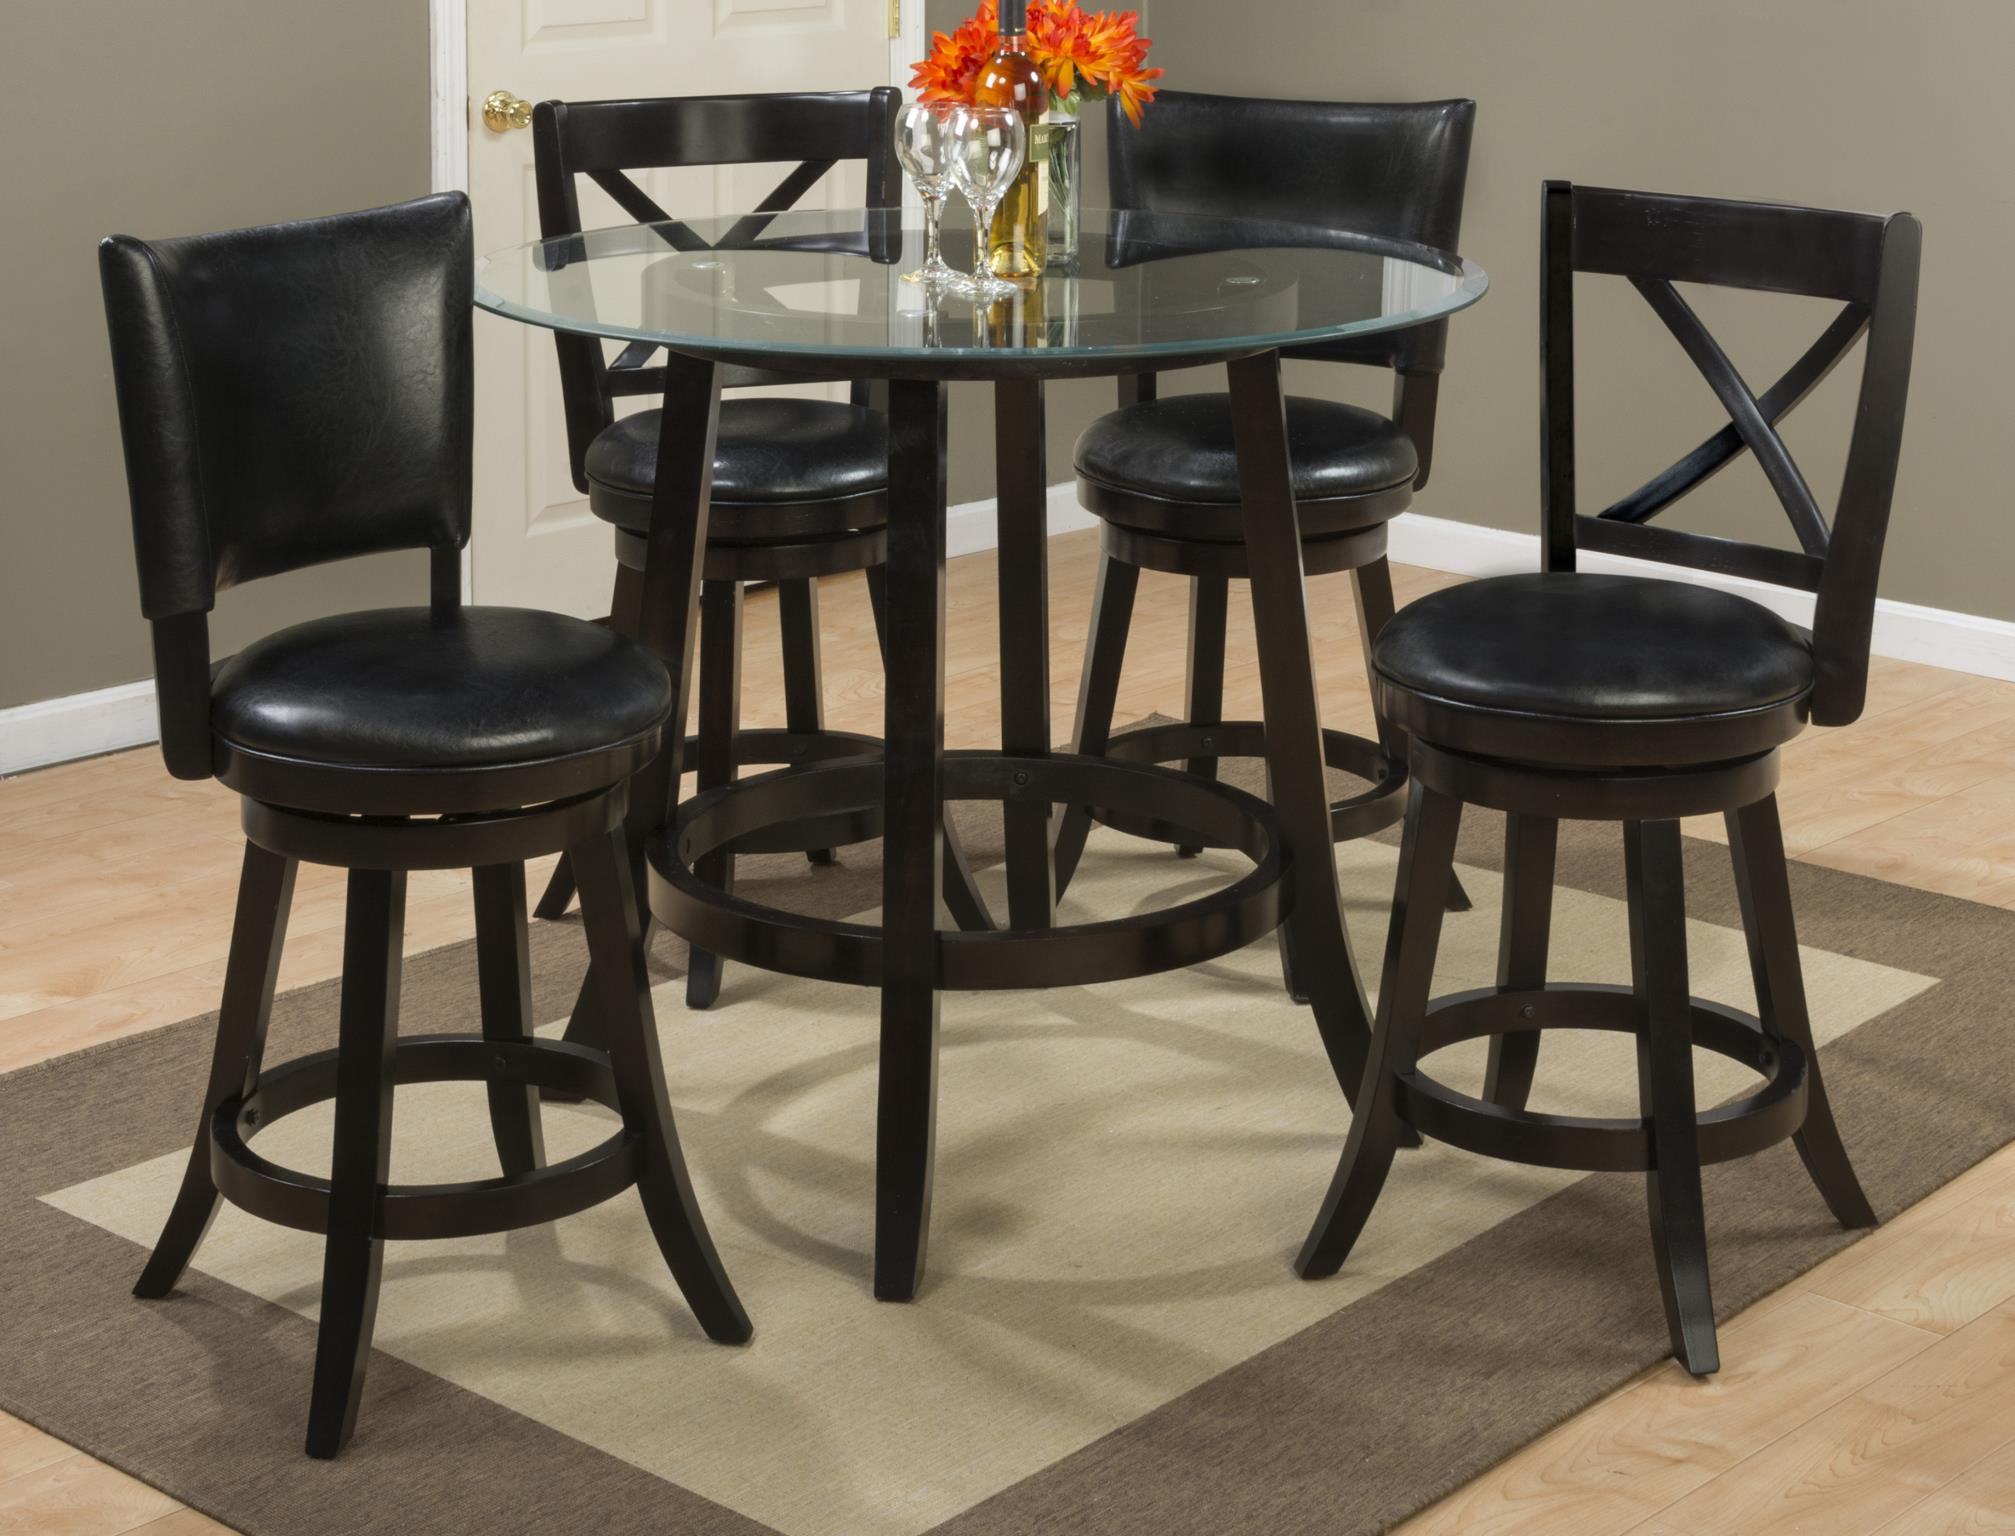 A Counter Height Glass Dining Table With Four Chairs Dining Tables